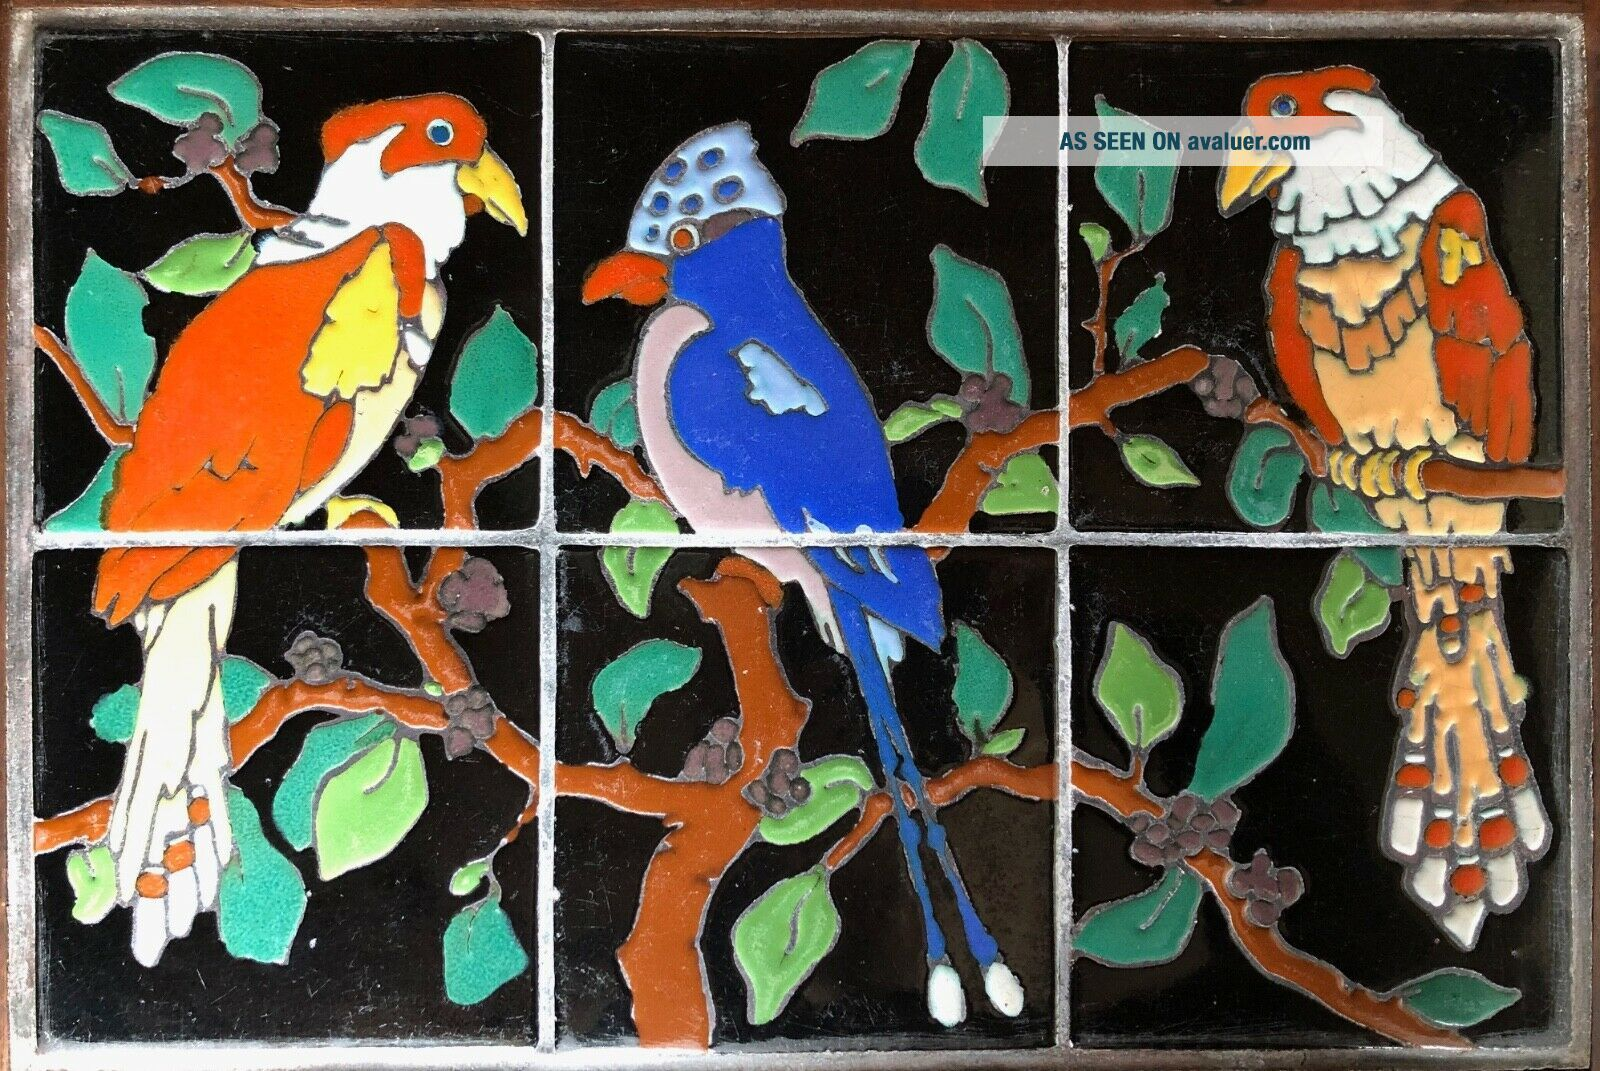 Vintage tiles pottery birds Taylor Arts Crafts Santa Monica Malibu California